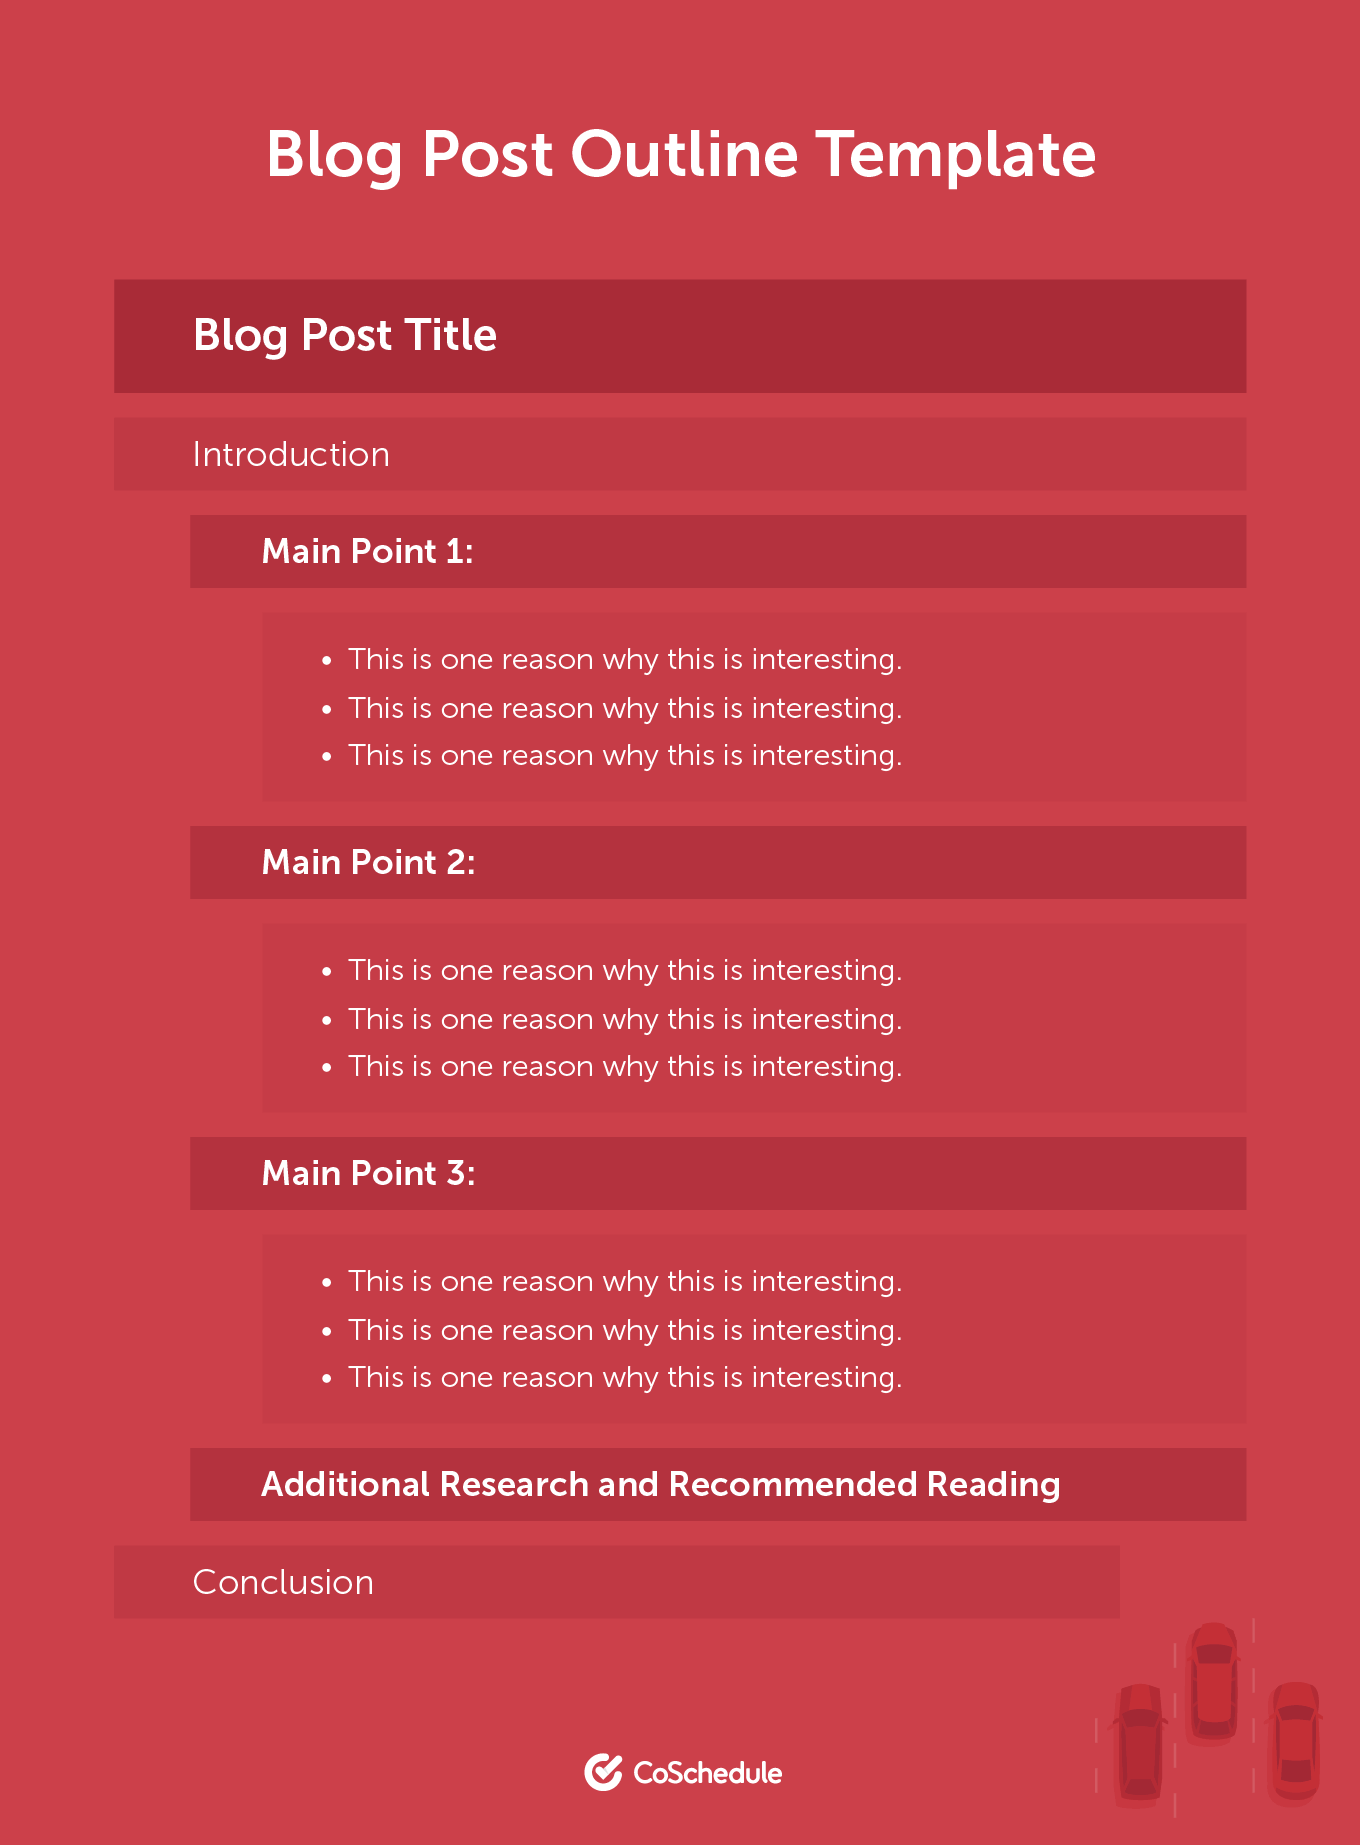 Example of a Blog Post Outline Template